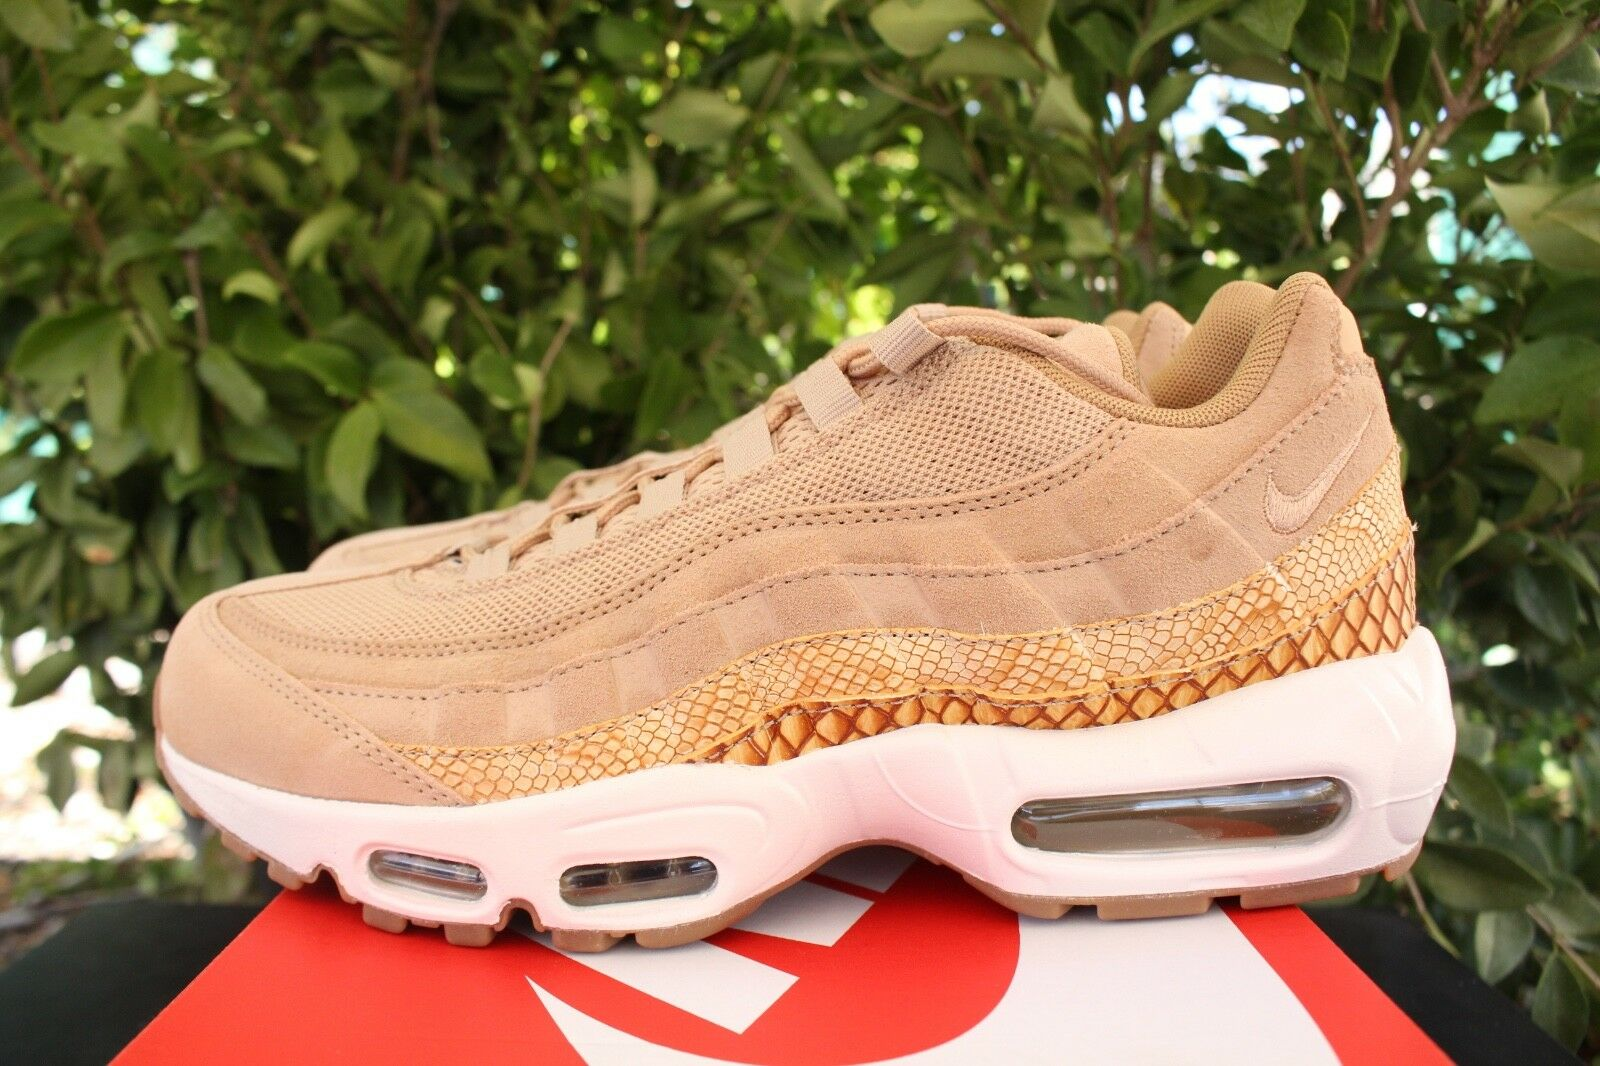 on sale 42086 3bf89 NIKE AIR MAX 95 PREMIUM SE SZ 8.5 TAN gold 924478 201 VACHETTA SNAKE  nzaryo834-Athletic Shoes